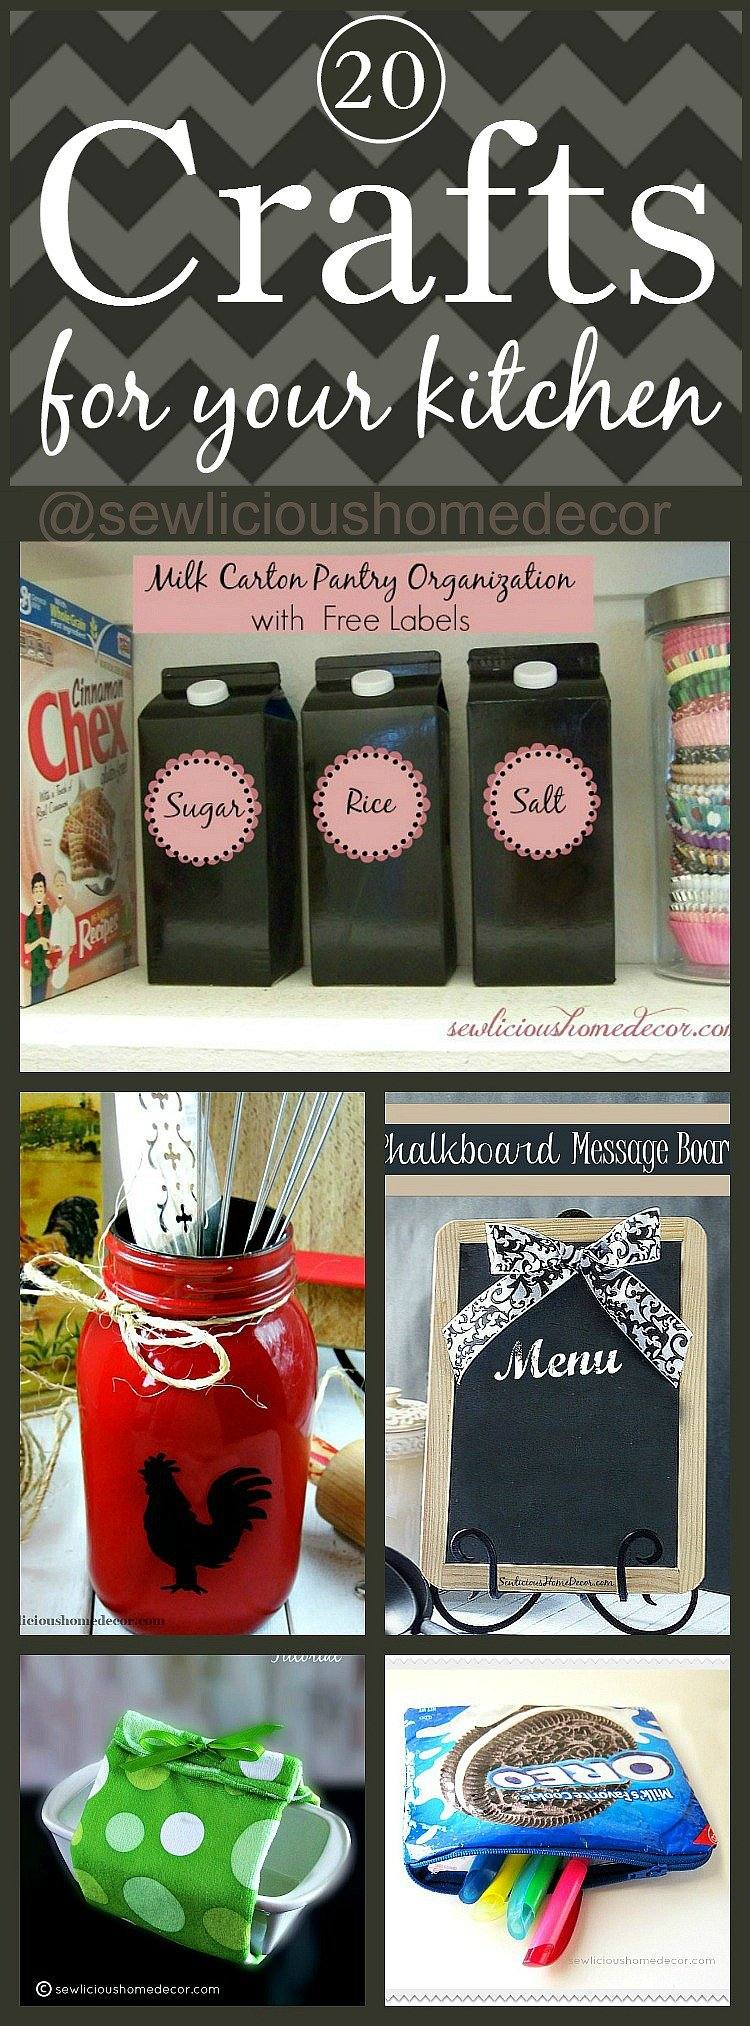 20 Best Craft Projects and Recycled DIYs for your kitchen sewlicioushomedecor.com